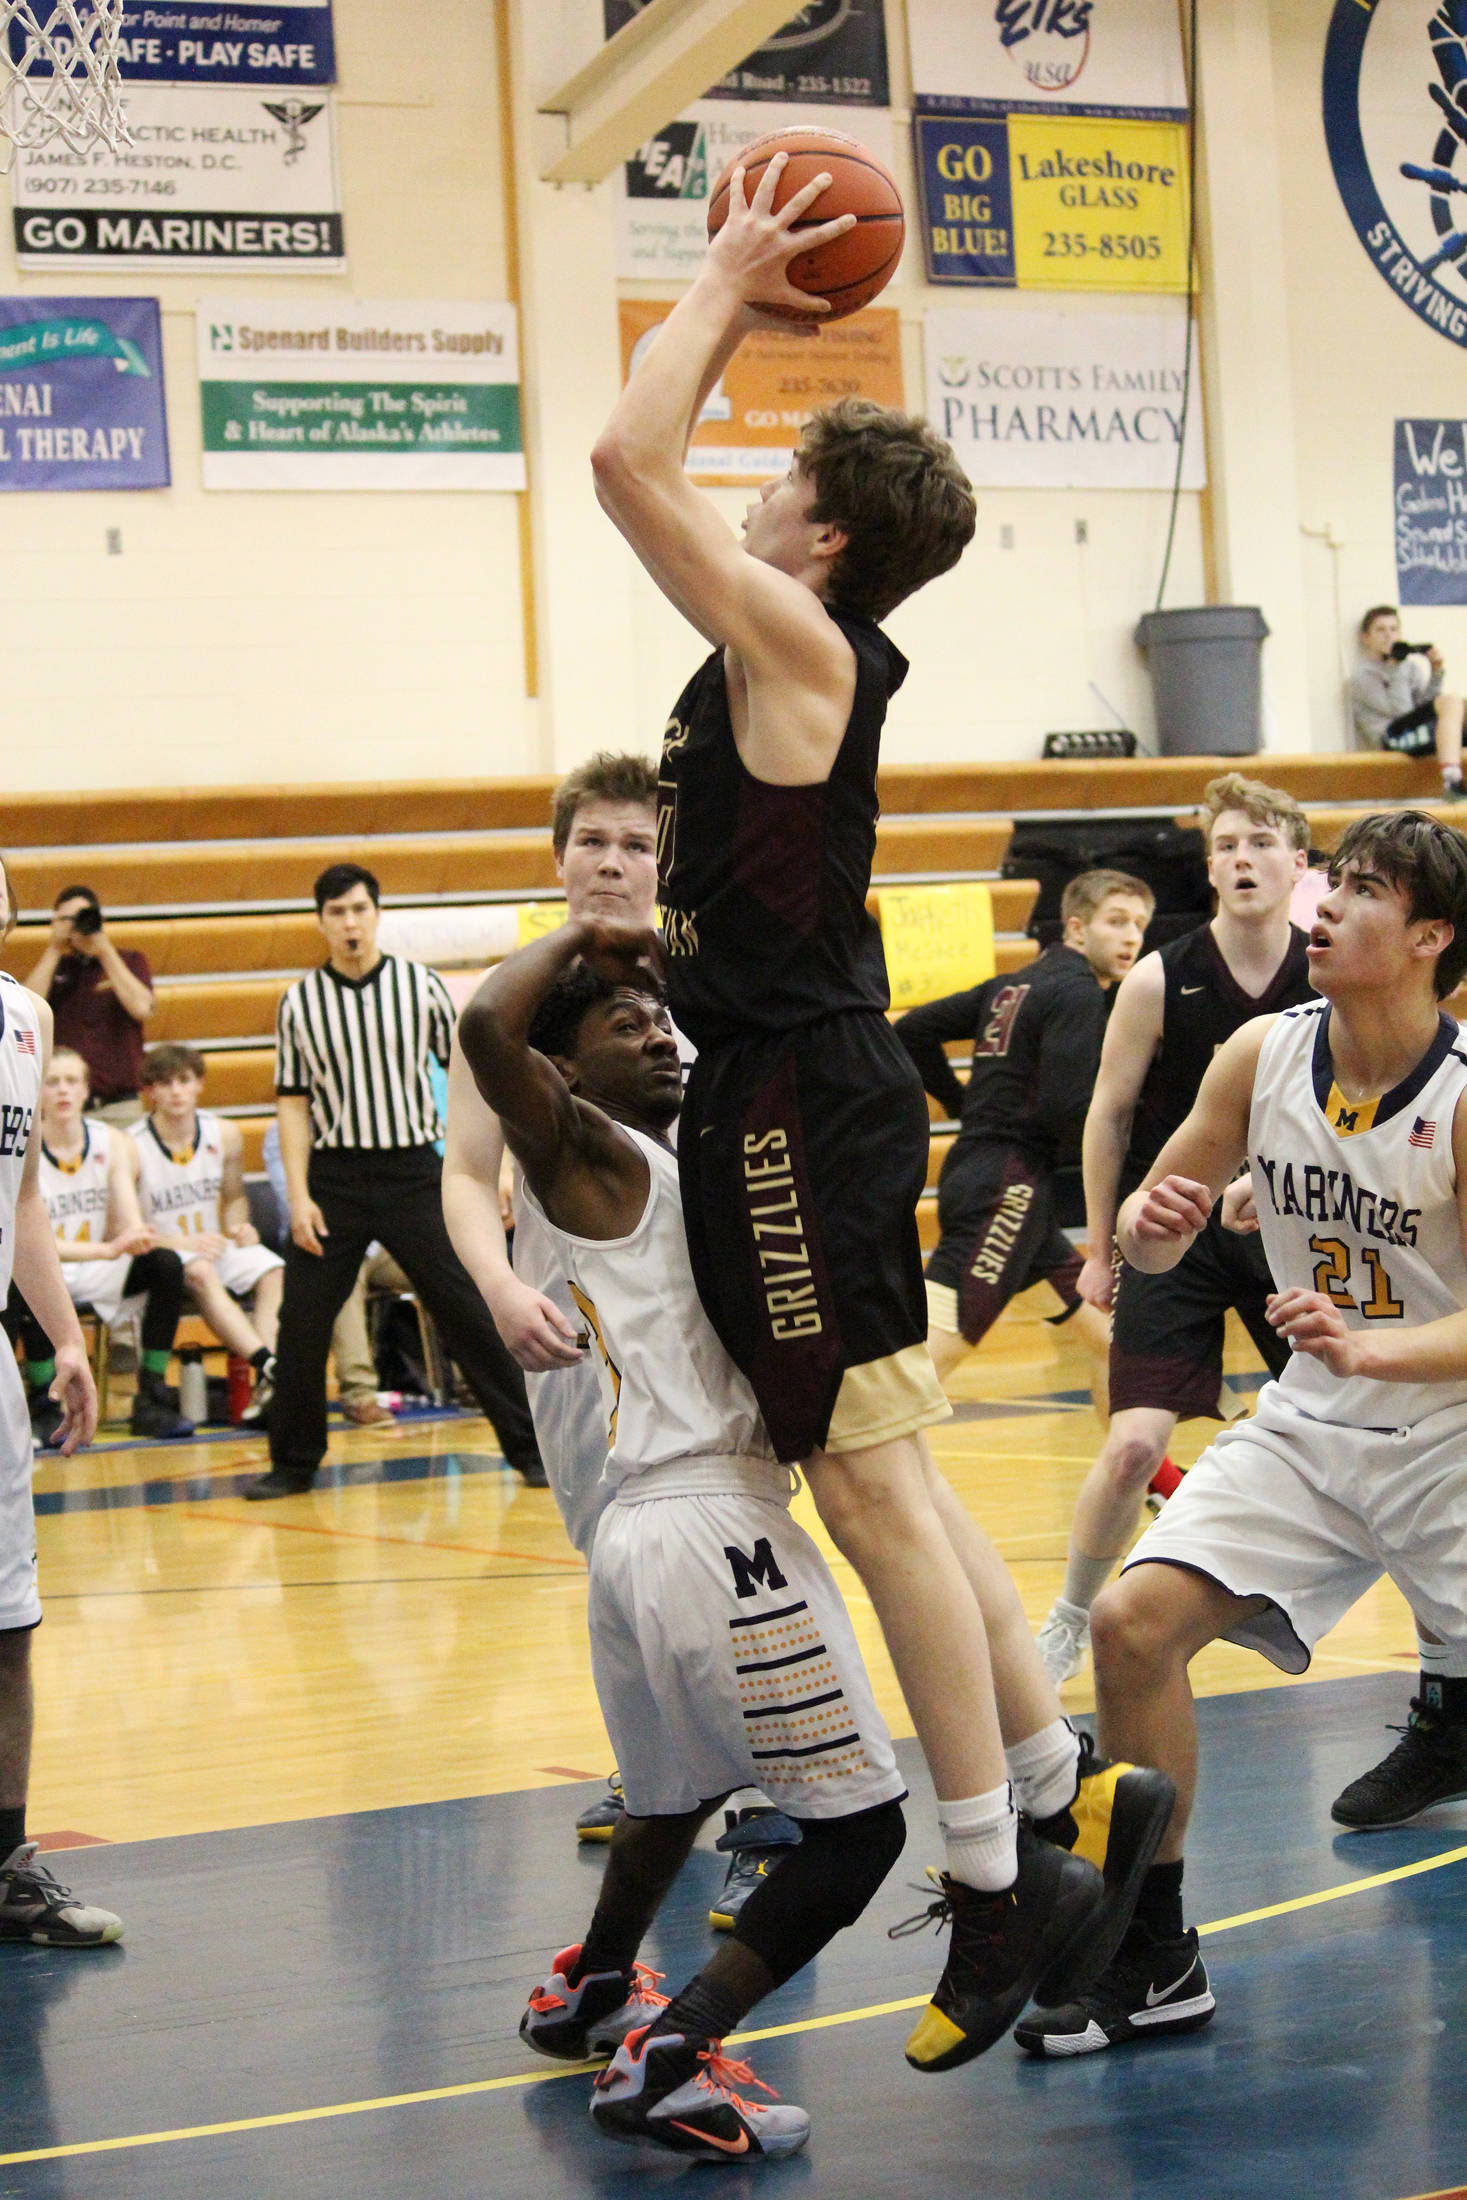 Nathan Ivanoff of Grace Christian School takes a shot at the Homer basket during a Friday, Feb. 22, 2019 game in Homer, Alaska. (Photo by Megan Pacer/Homer News)